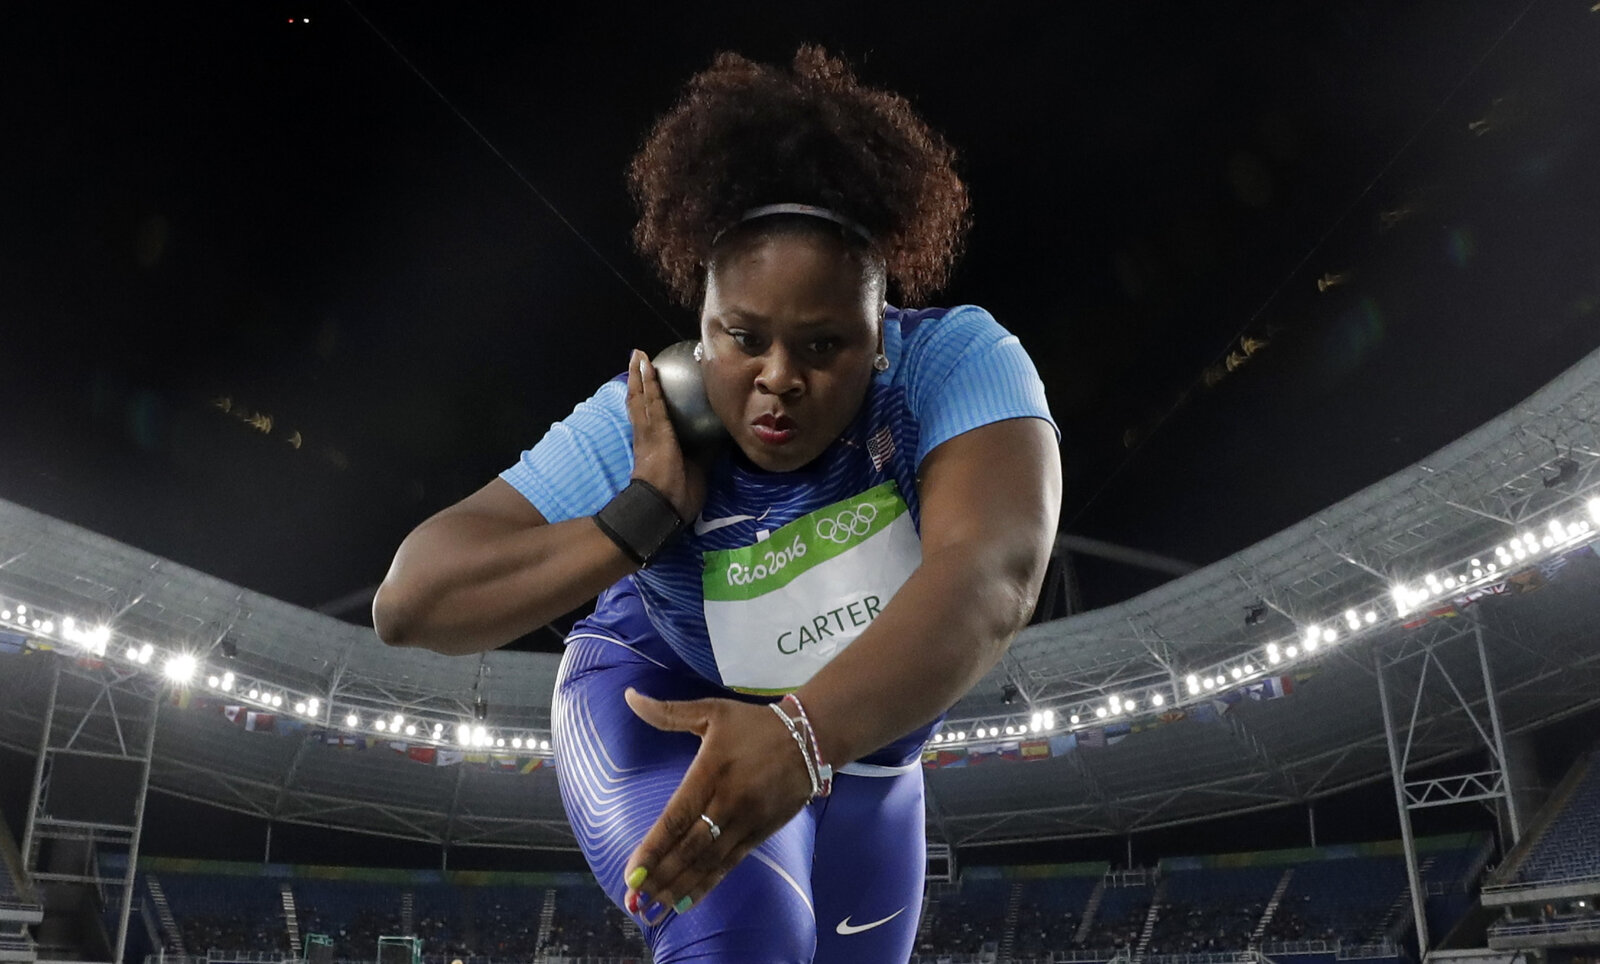 Michelle Carter competes in the women's shot put final during the 2016 Summer Olympics at the Olympic stadium in Rio de Janeiro, Brazil, on Friday.